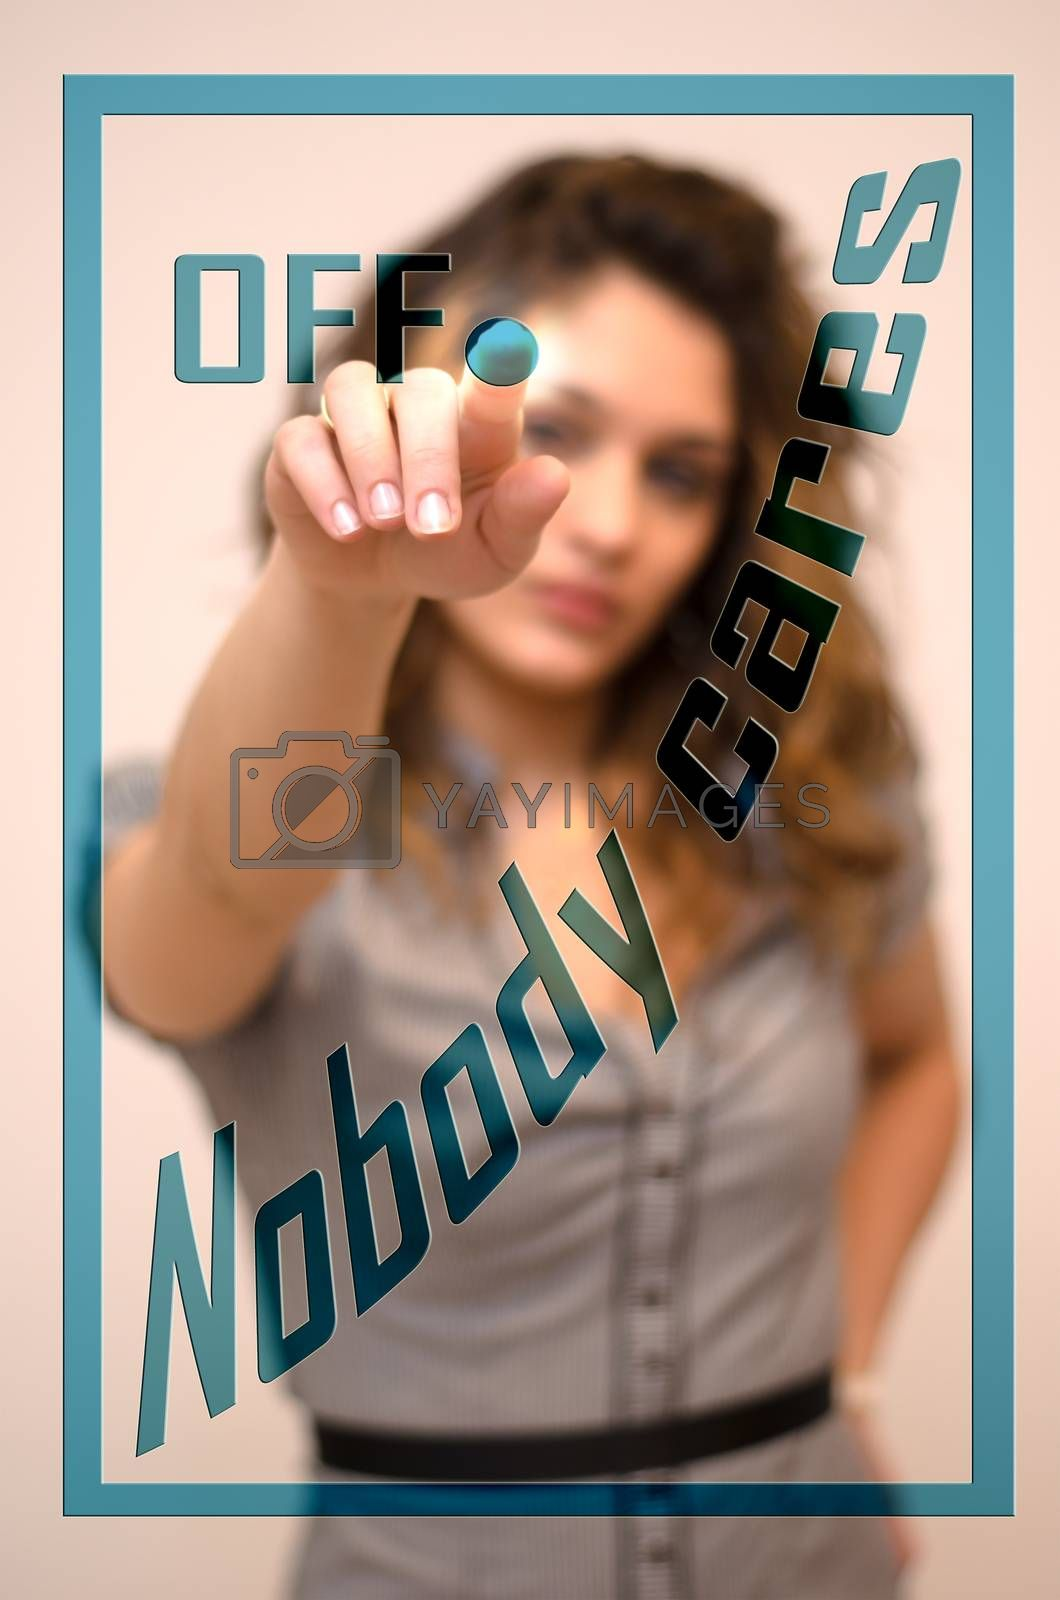 Royalty free image of woman switching off Nobody cares on digital interace by vepar5